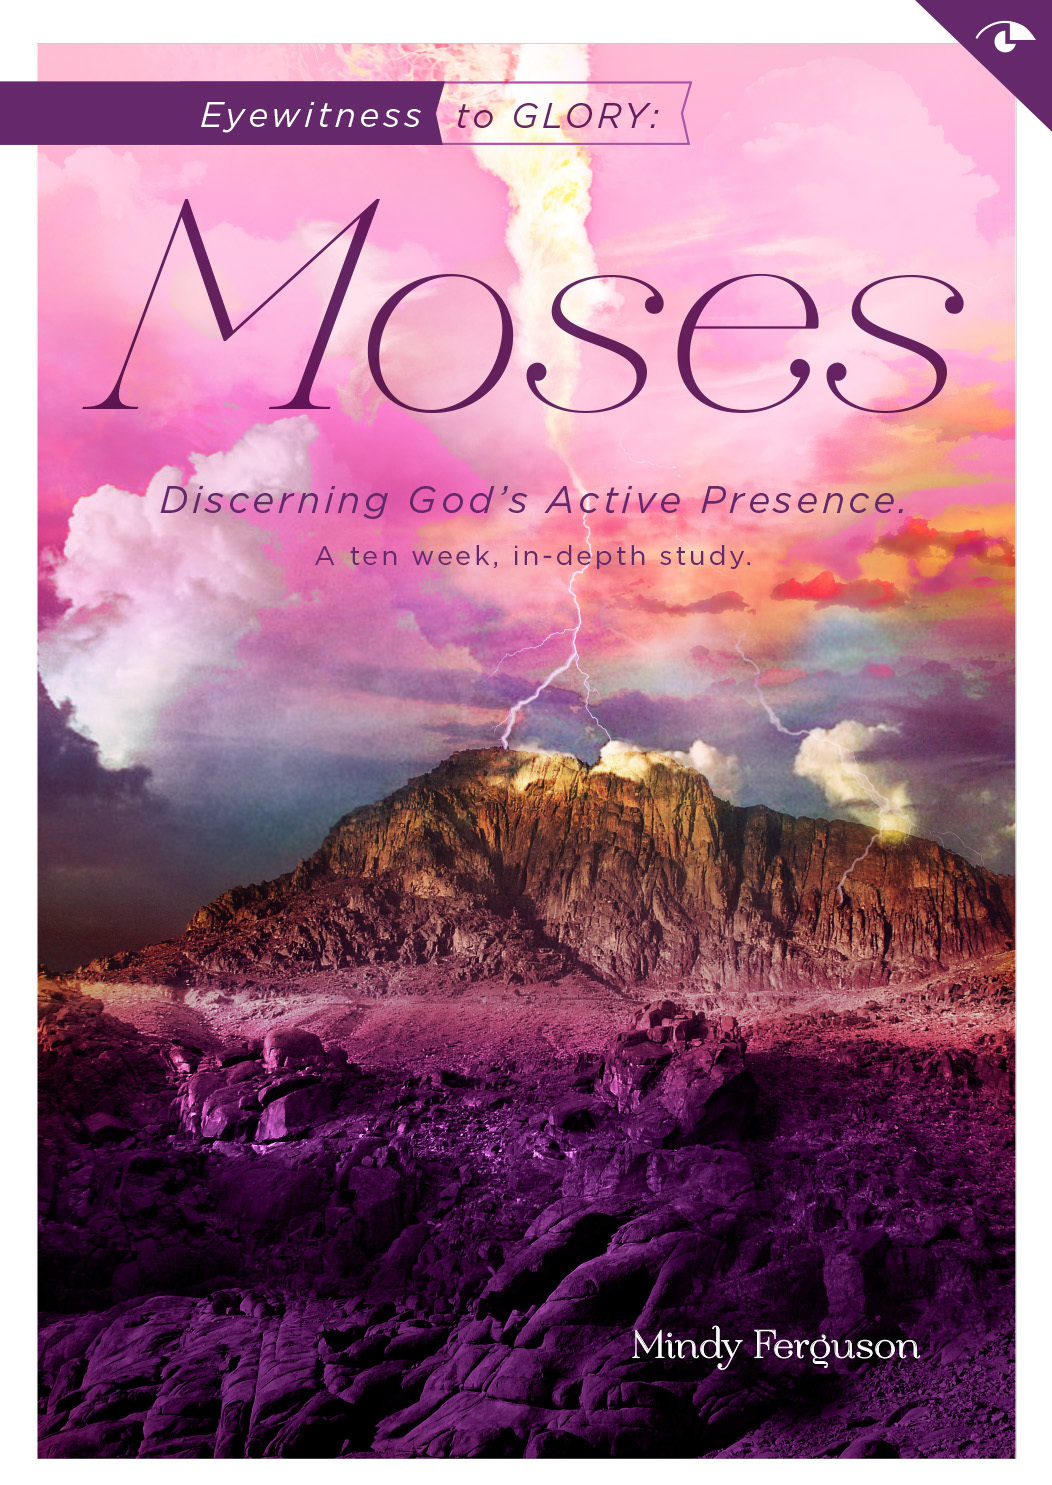 FREE Video Handouts or Moses: Eyewitness to Glory